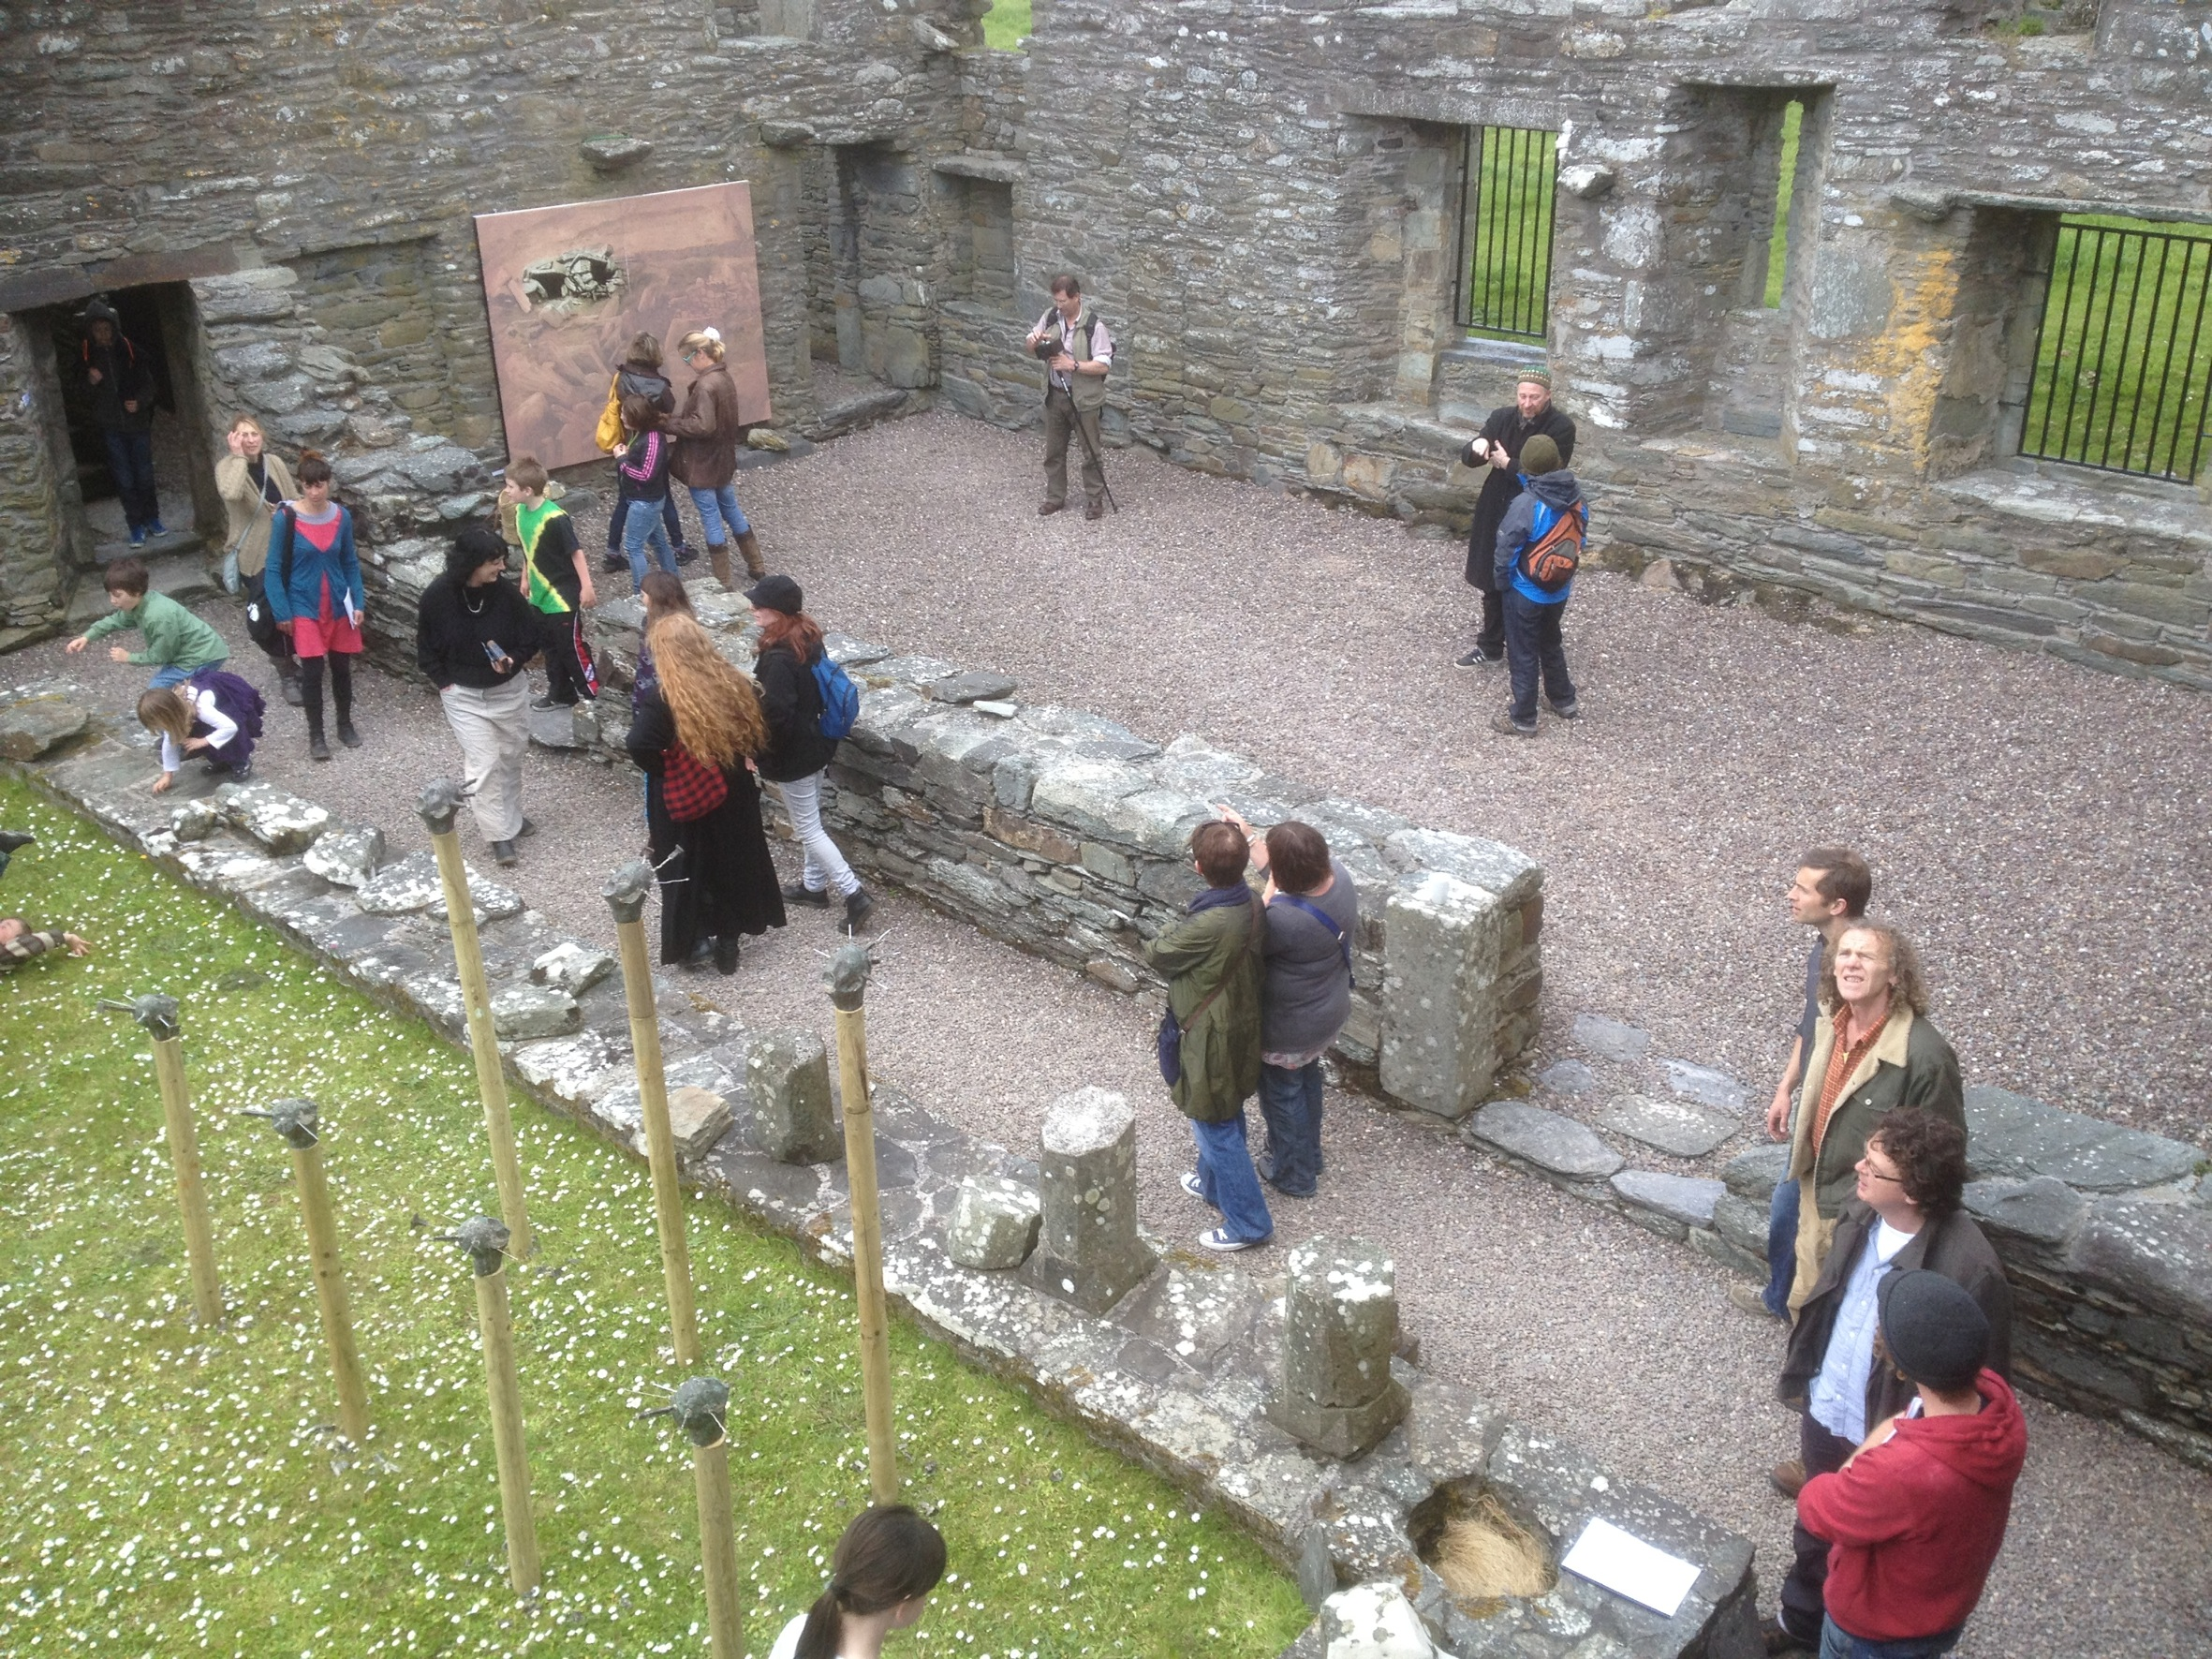 Visitors to Sherkin Abbey on Sherkin Island in West Cork viewing the 'Entrophy & Relic' exhibition.